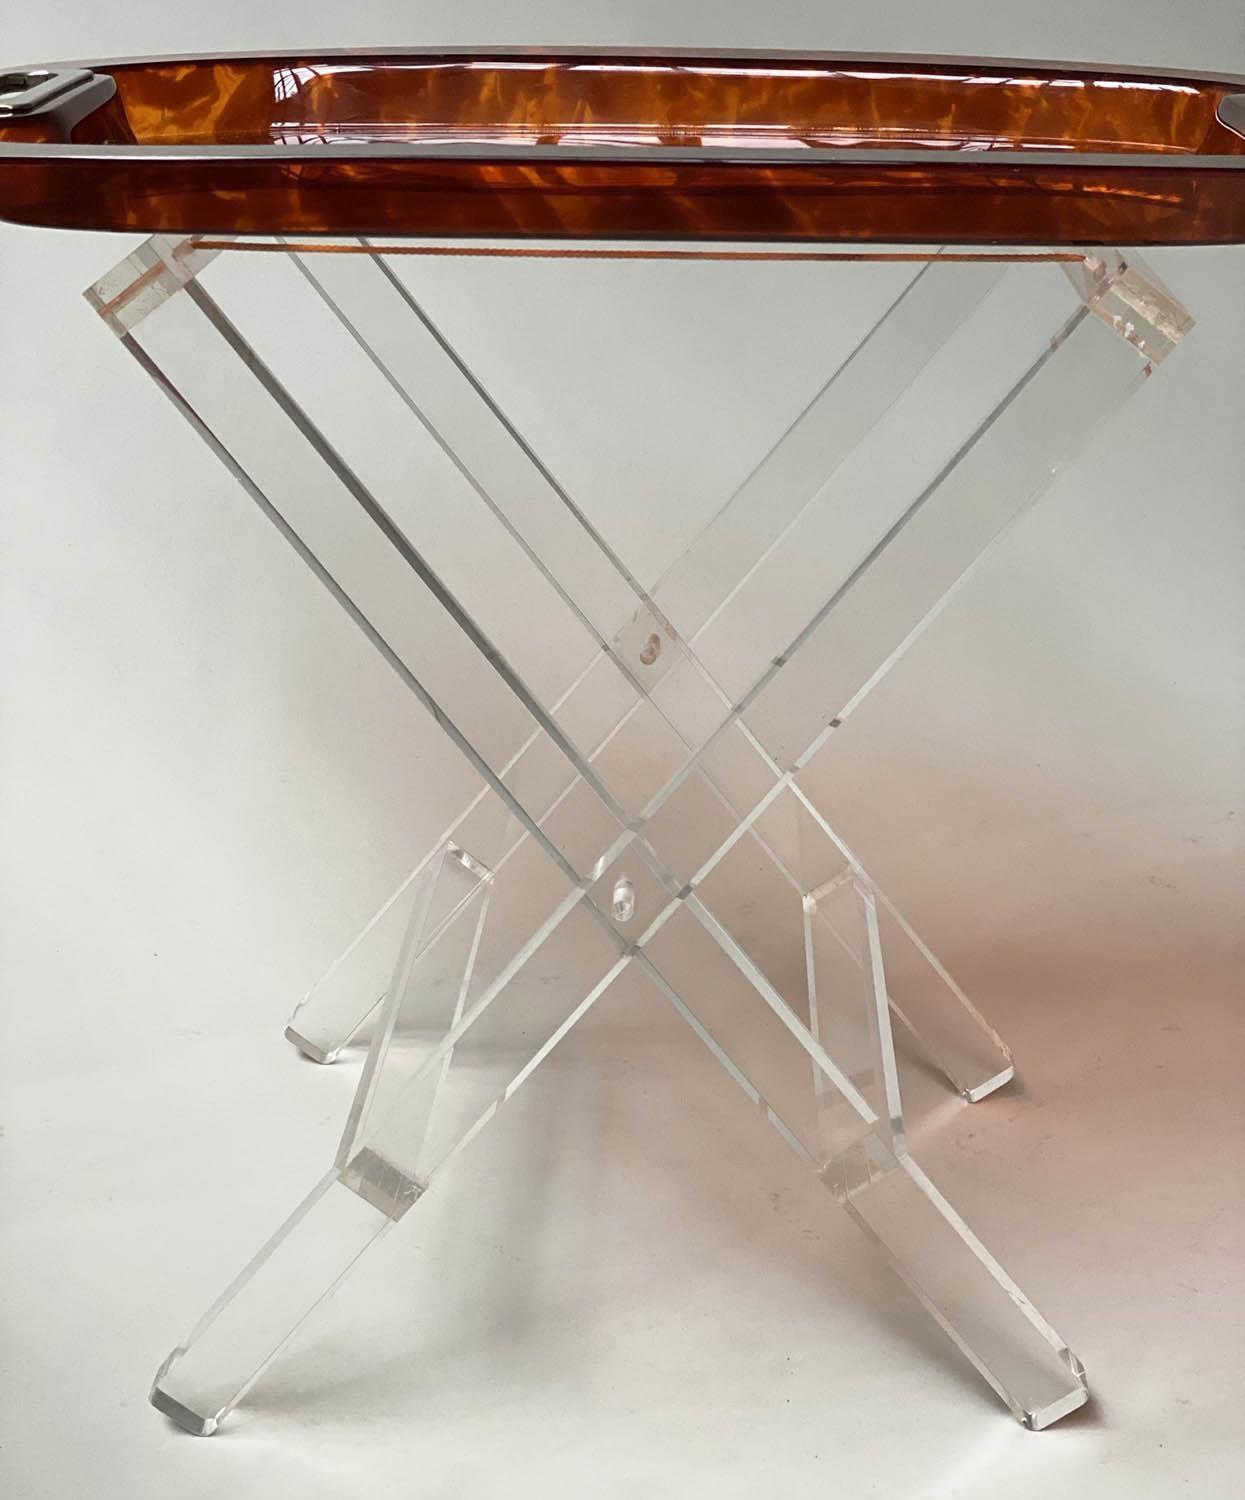 TRAY ON STAND, rectangular faux tortoiseshell with silvered metal handles on folding lucite stand, - Image 6 of 8